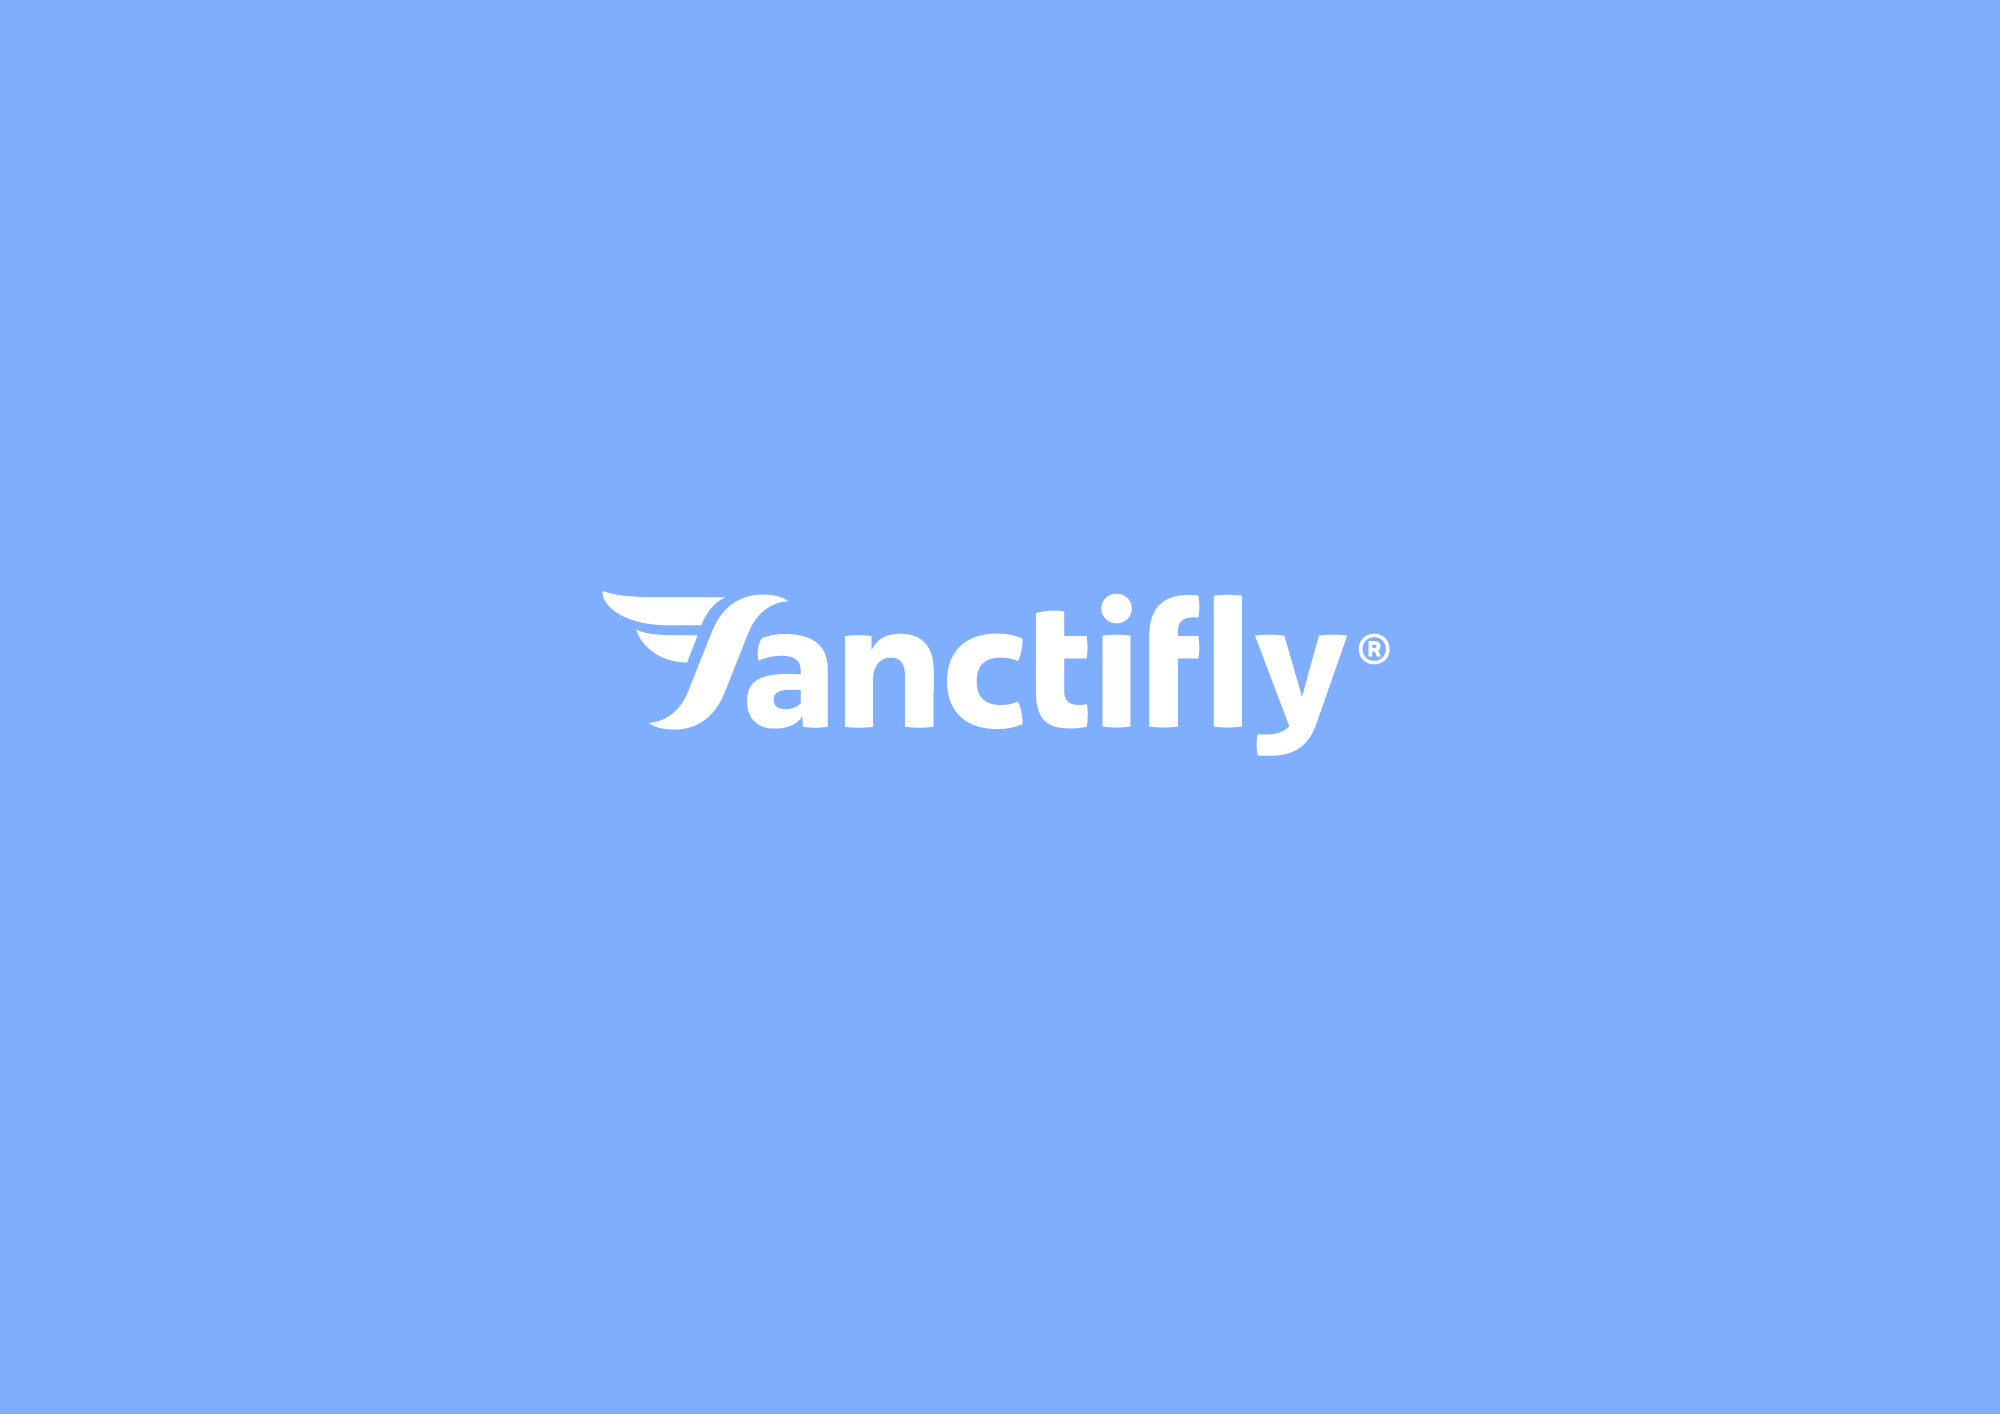 Cover image: Sanctifly